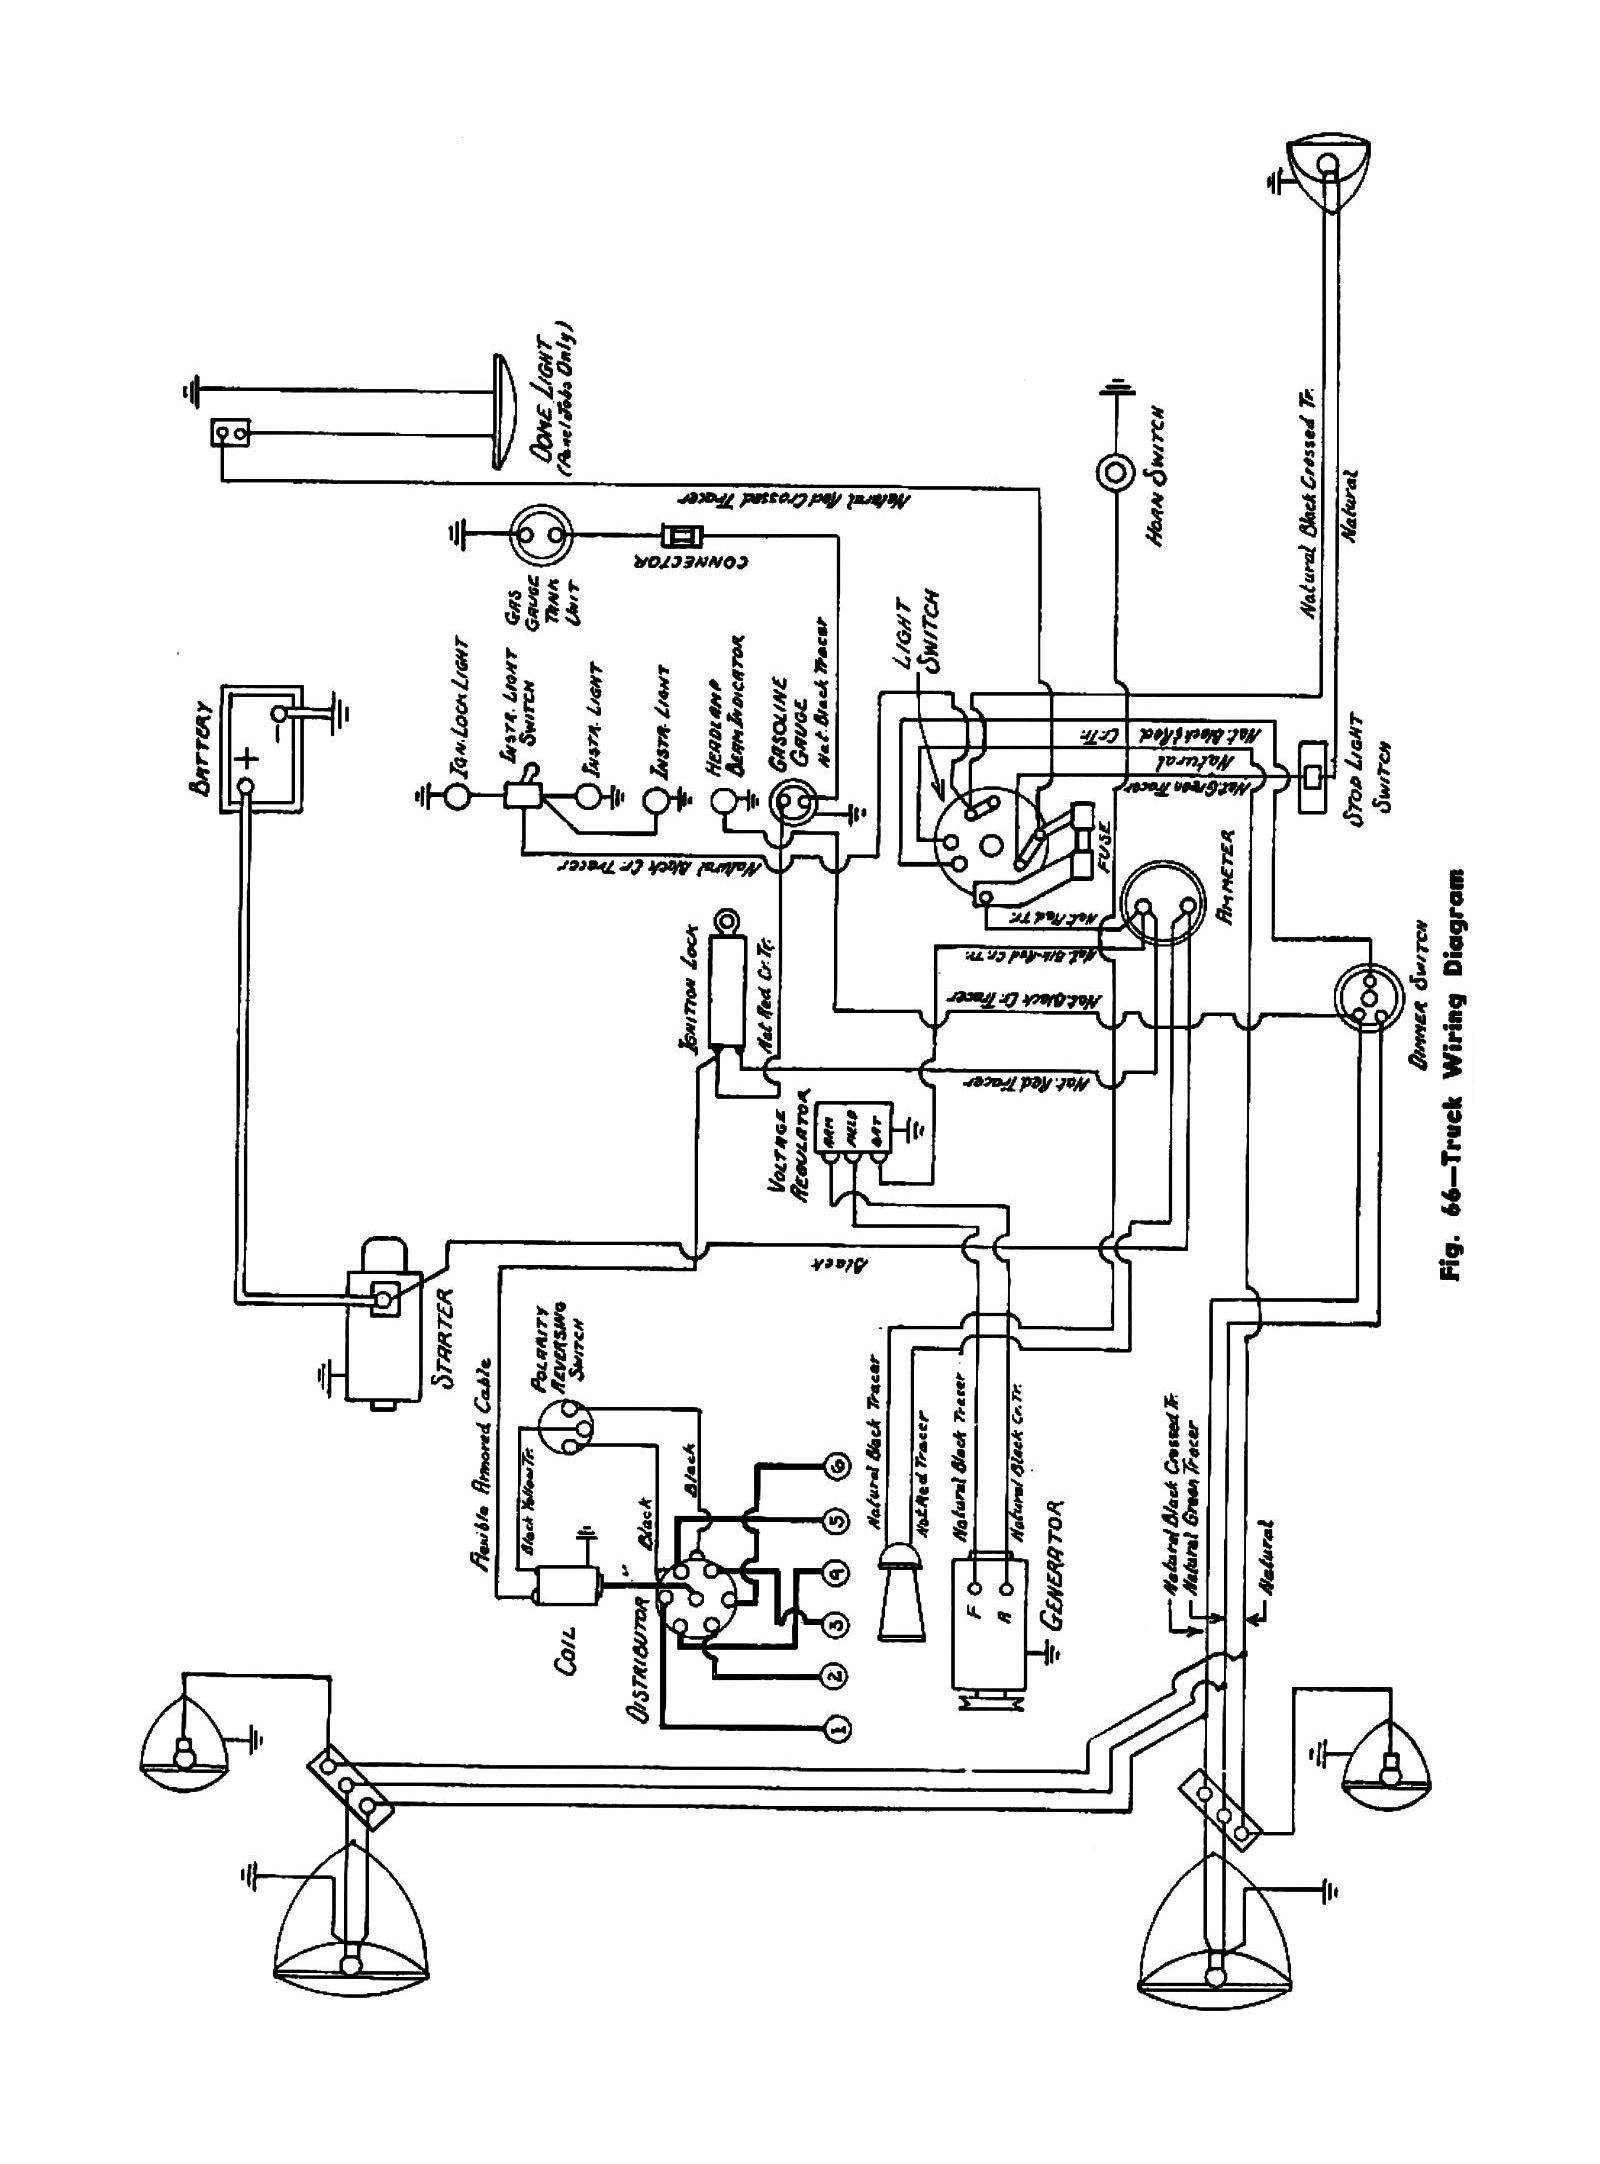 1947 chevy wiring diagram wiring schematics diagram rh mychampagnedaze com Chevy Fuel Gauge Not Working Chevy Fuel Gauge Not Working